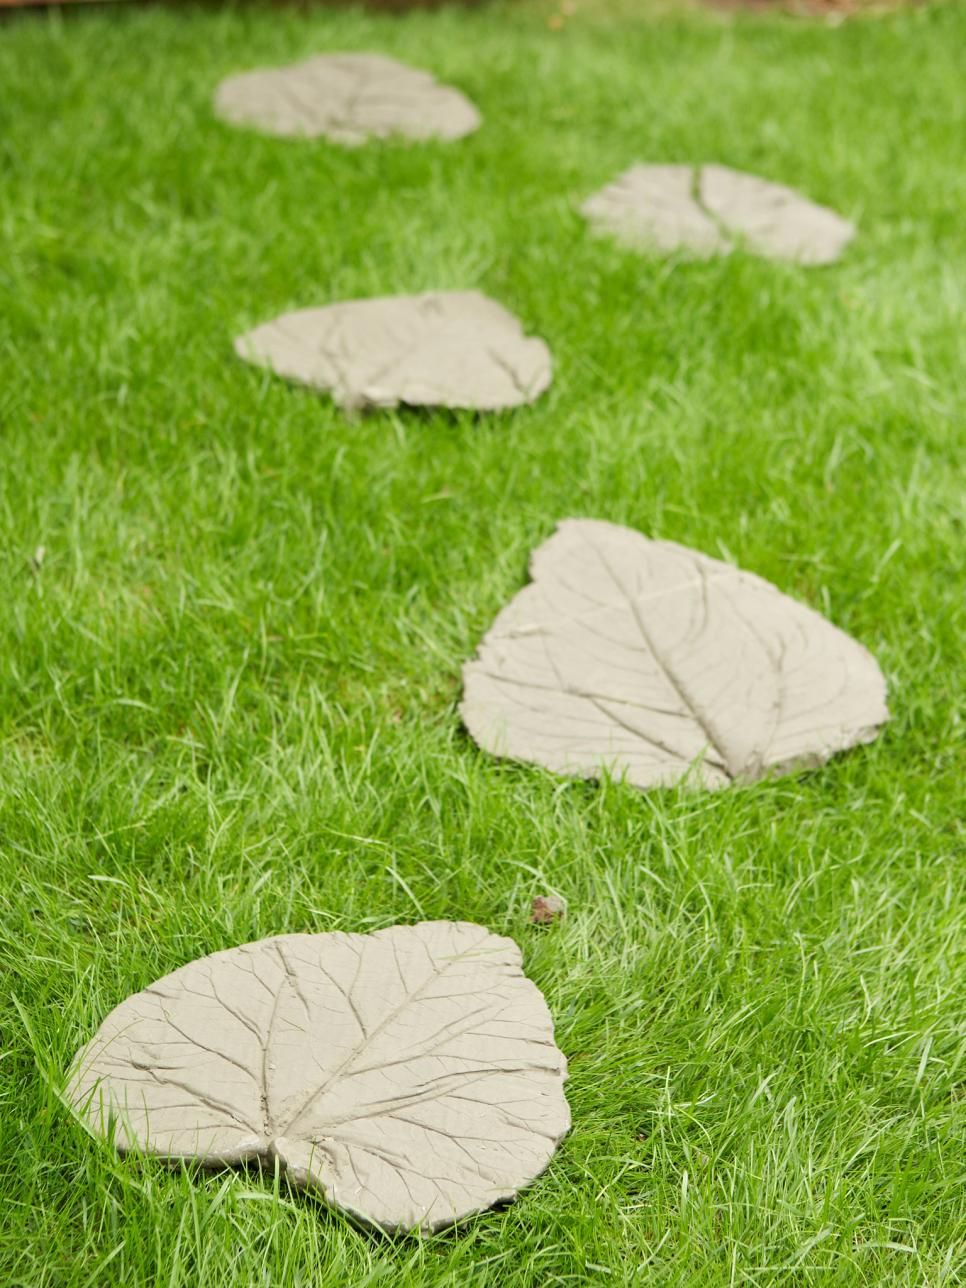 Communication on this topic: How to Make Leaf Stepping Stones, how-to-make-leaf-stepping-stones/